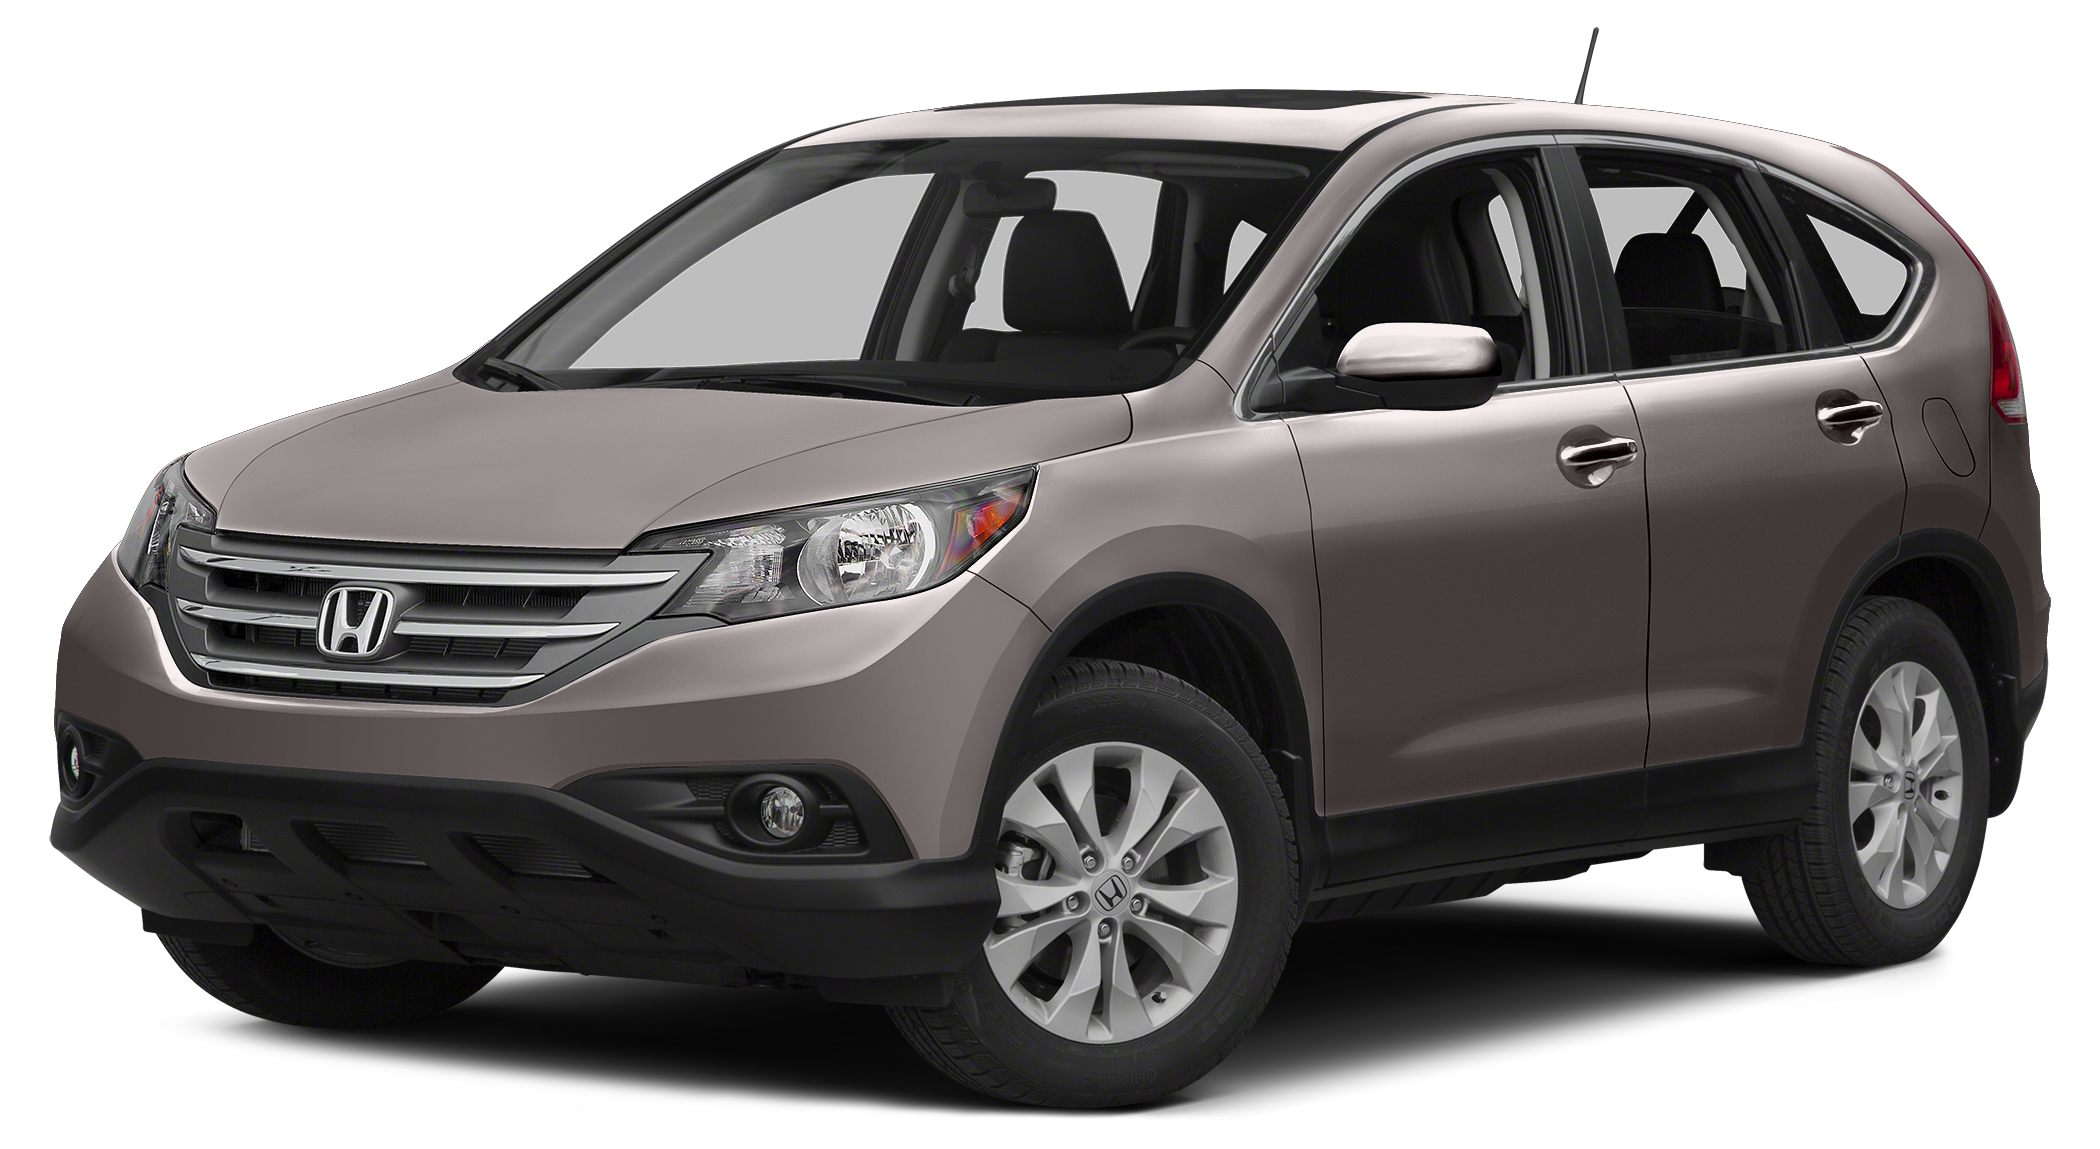 2014 Honda CR-V EX-L w Navigation CARFAX 1-Owner Excellent Condition GREAT MILES 25327 PRICED